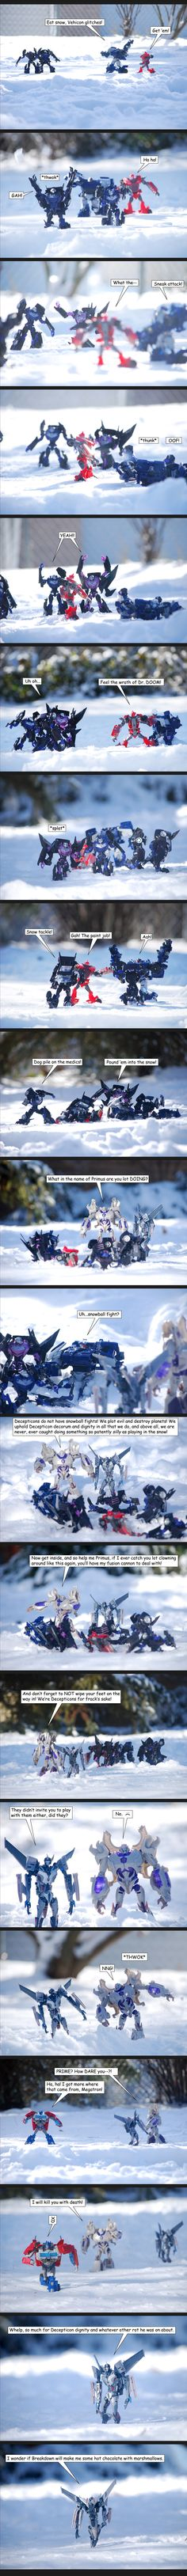 Snowball Fight by The-Starhorse.deviantart.com